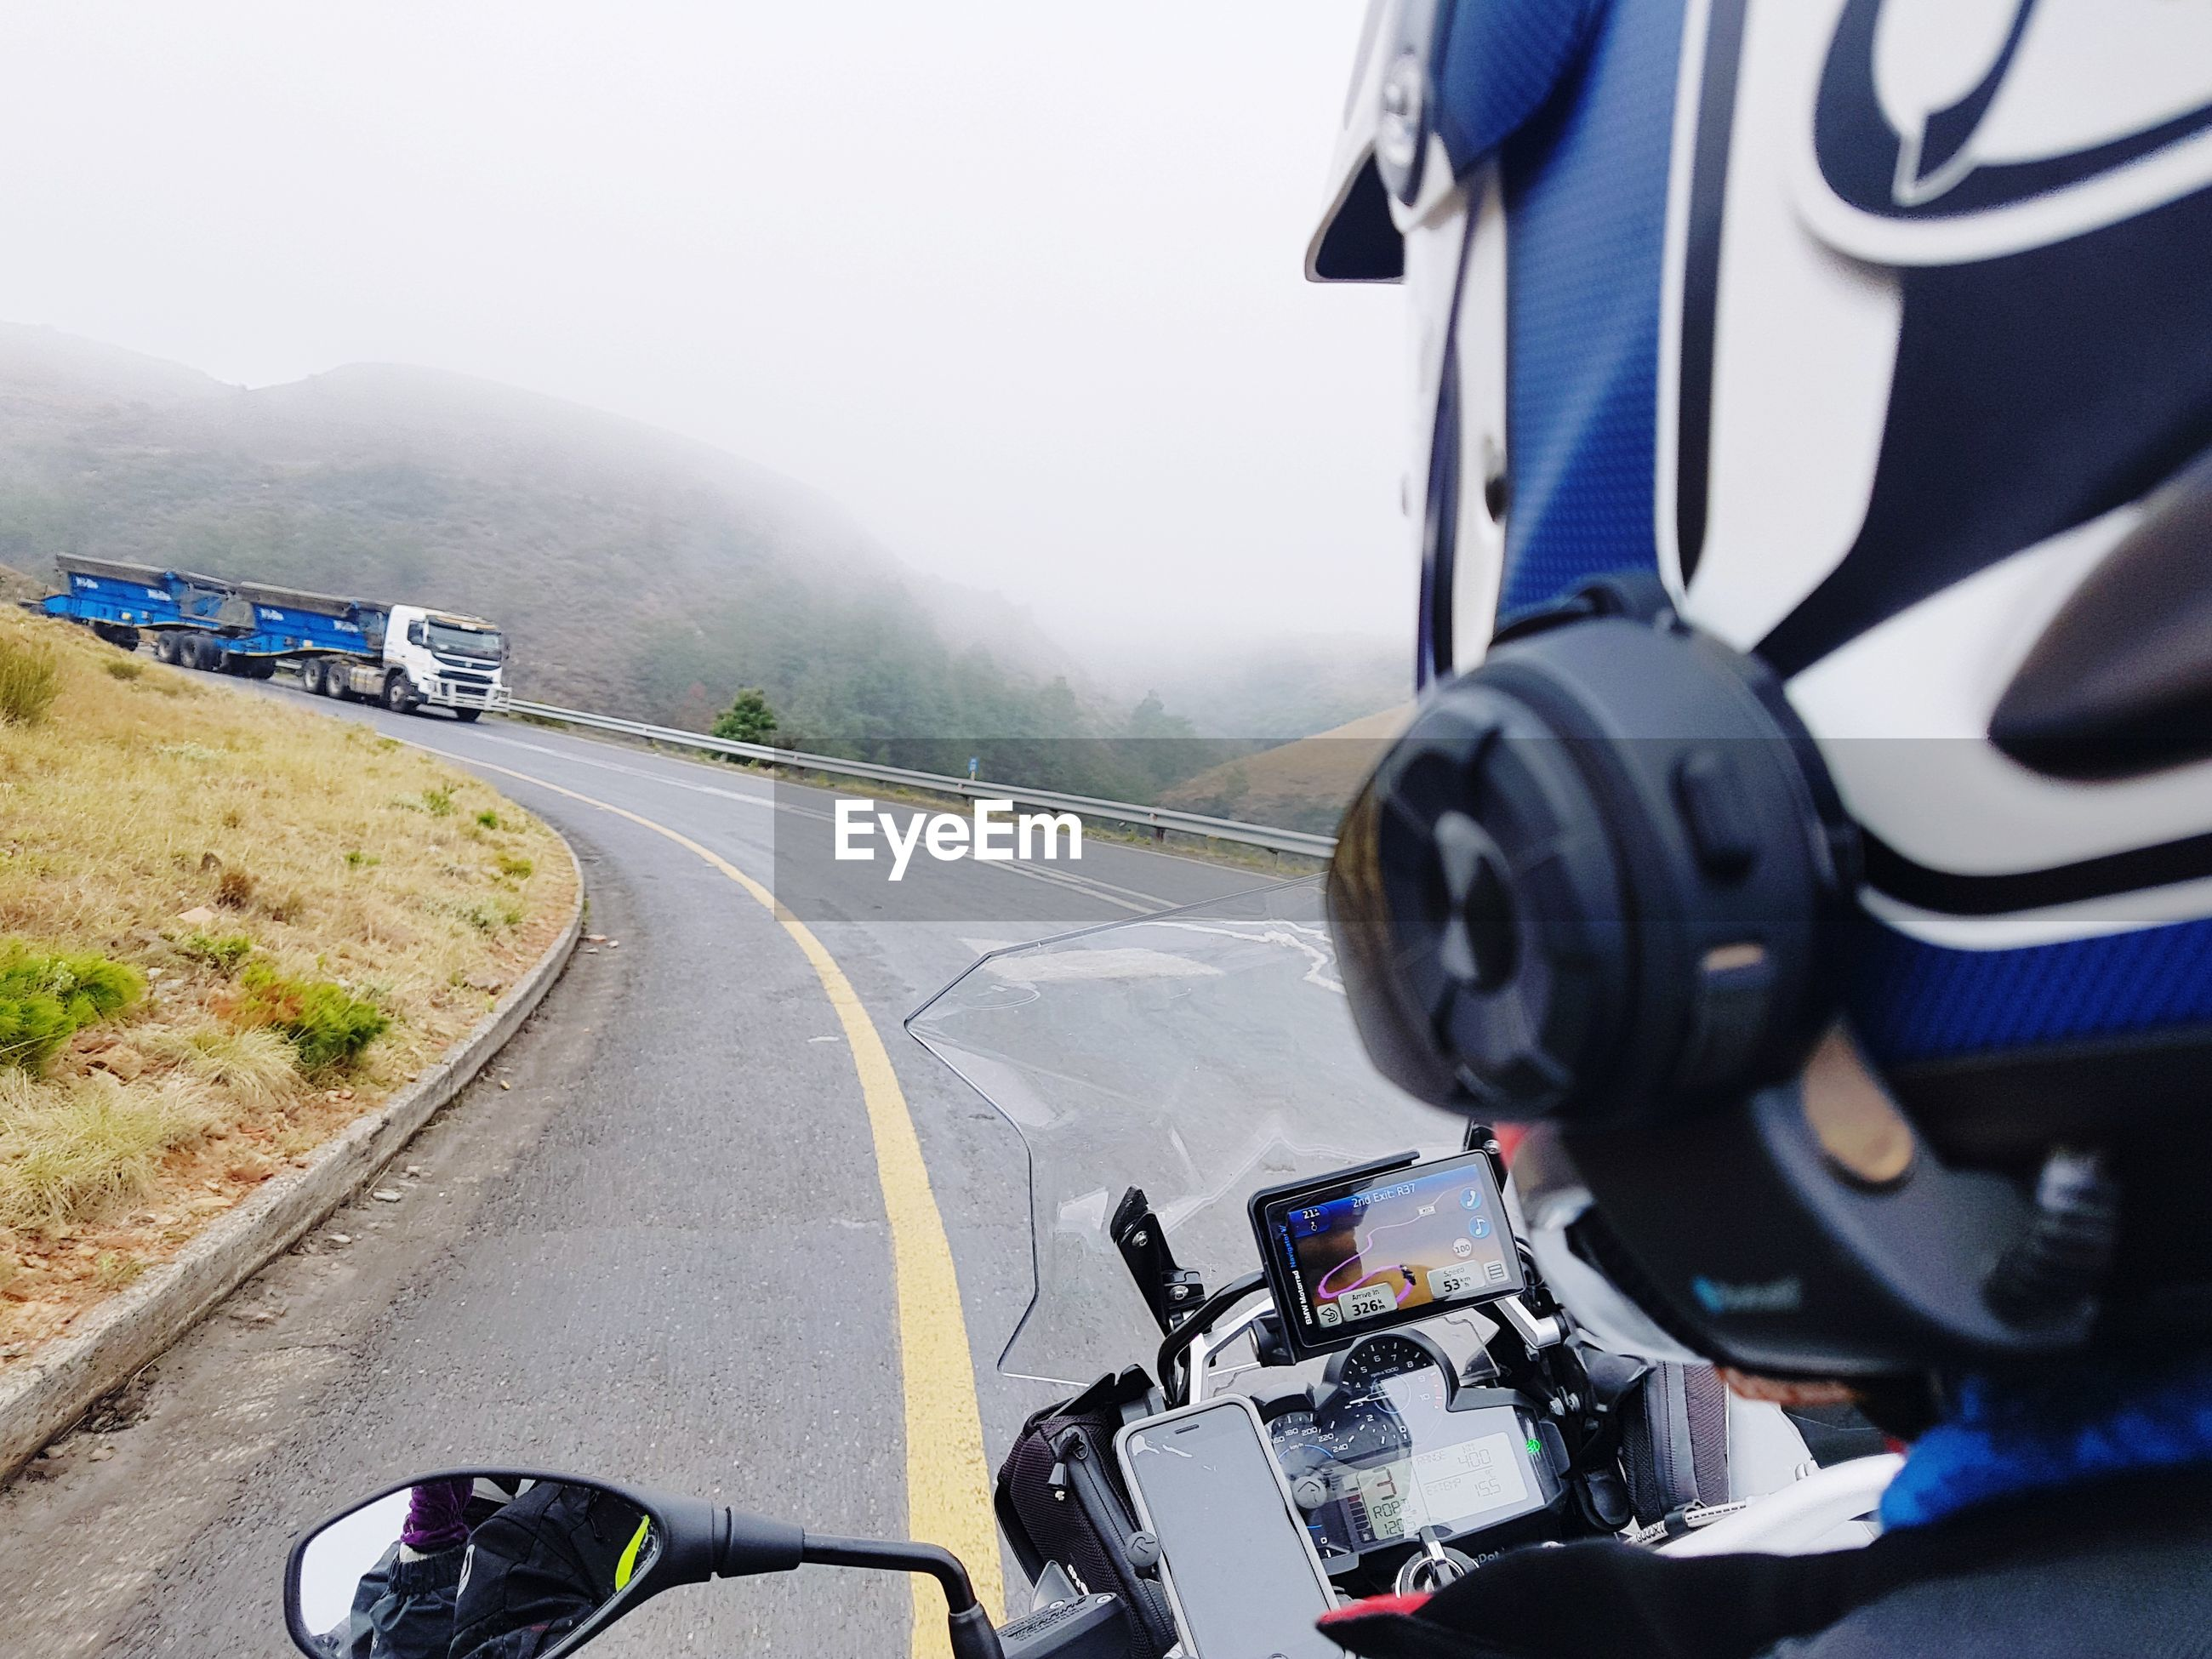 VIEW OF MAN RIDING MOTORCYCLE ON ROAD AGAINST SKY